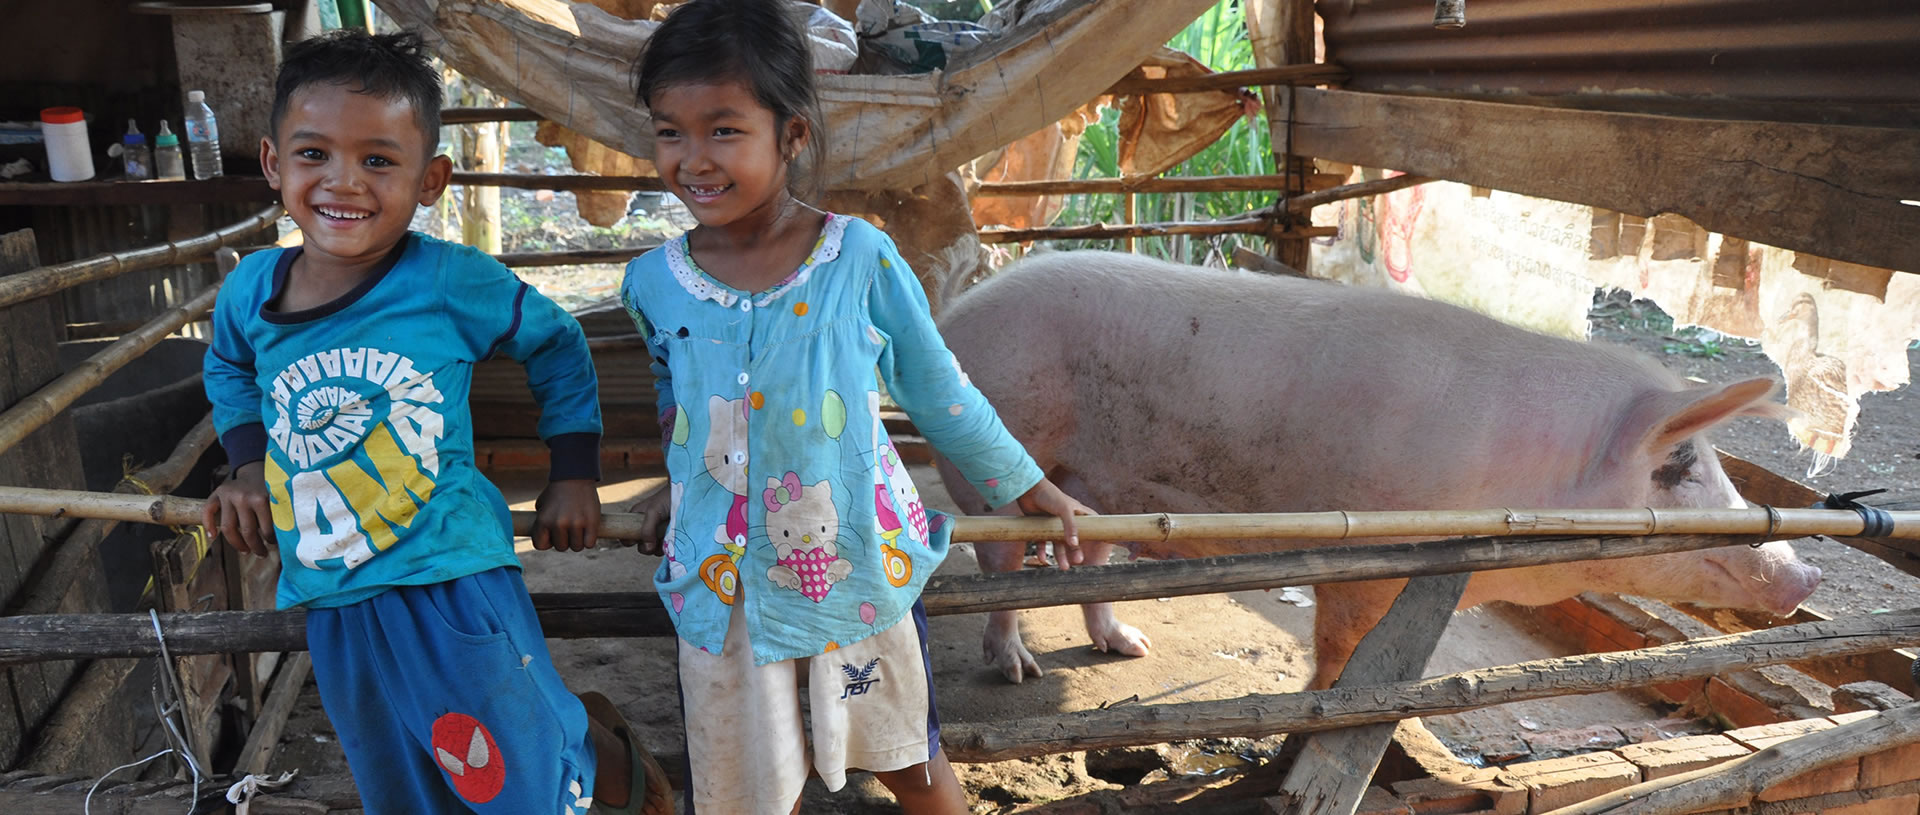 hope in the form of piglets in Cambodia banner